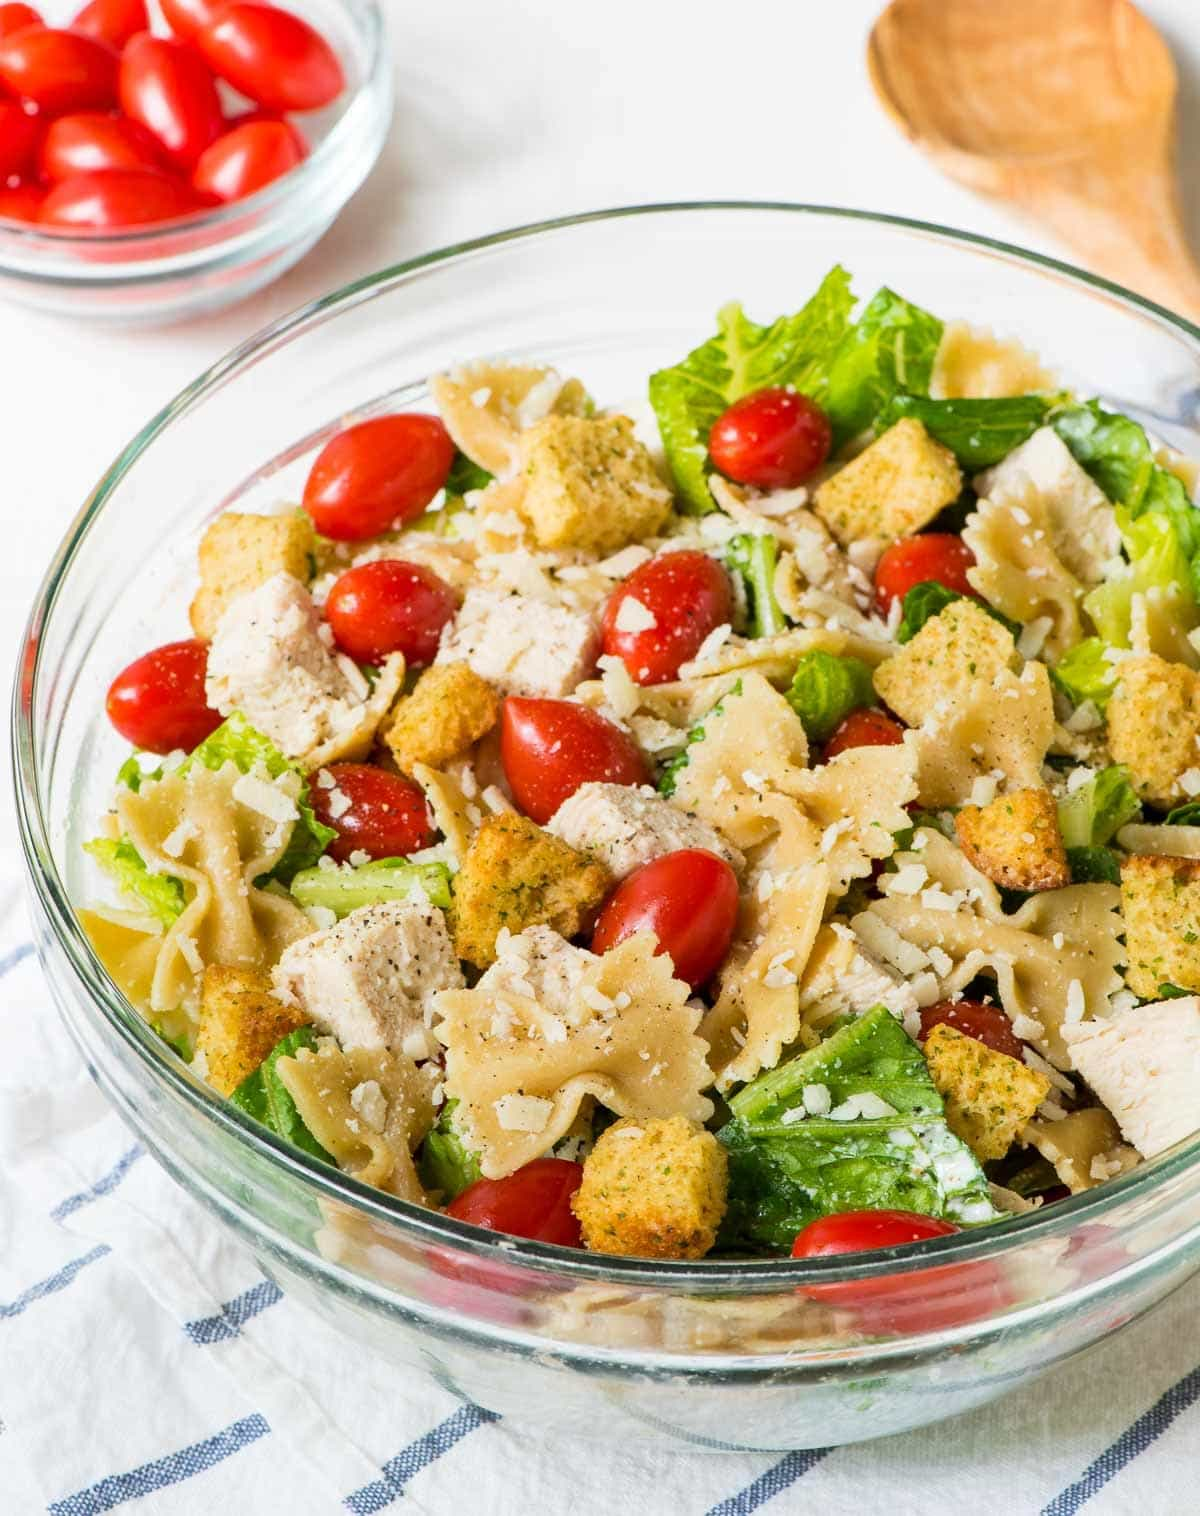 Bowtie Chicken Caesar Pasta Salad — EASY recipe that's a great side dish or hearty enough for an all-in-one meal. Whole wheat pasta, crisp veggies, and the best creamy homemade Caesar dressing. @wellplated